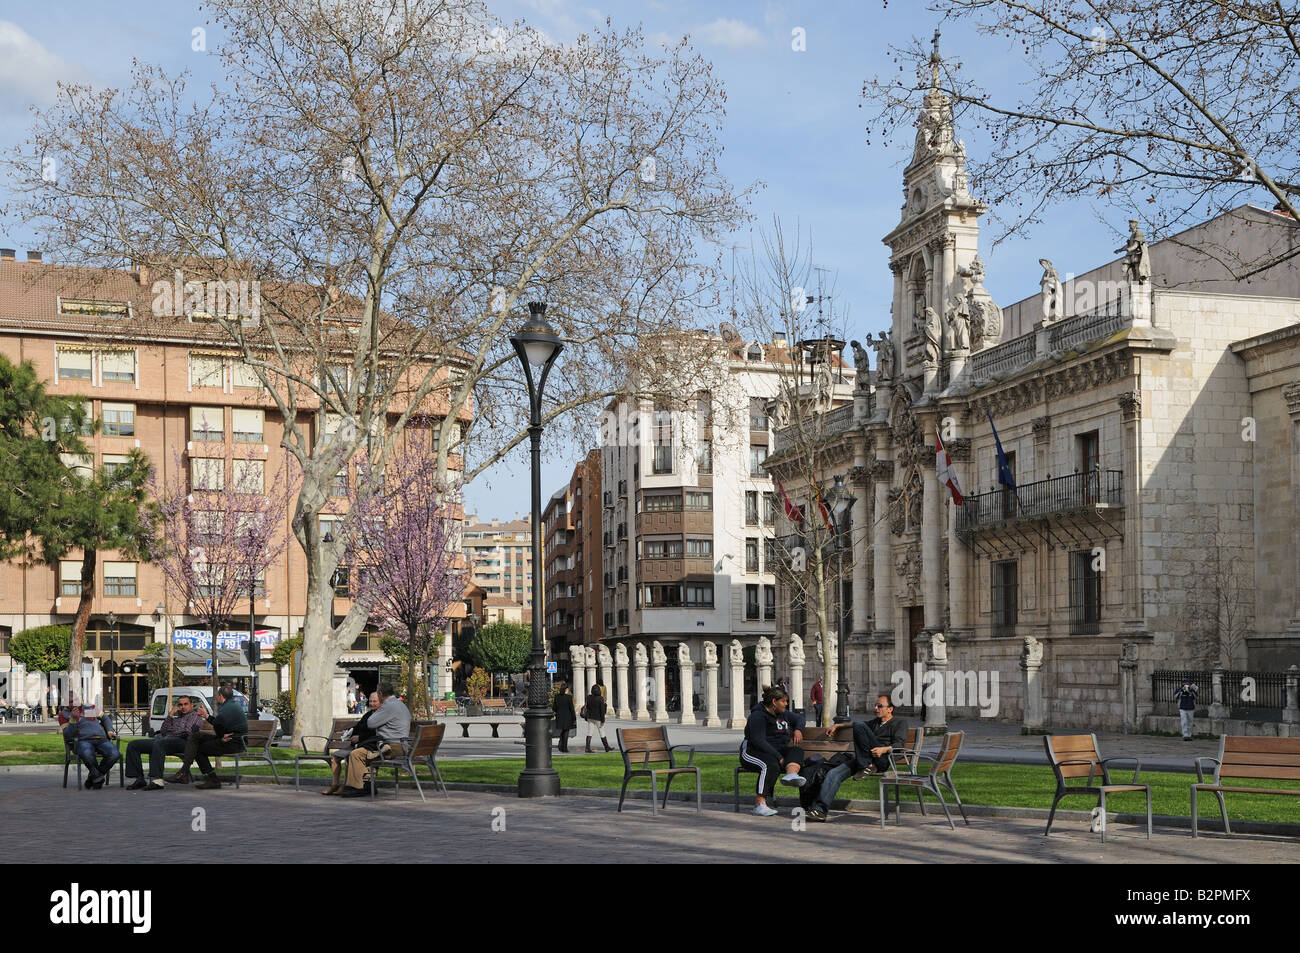 Square piazza in front of the baroque Universidad University Valladolid Spain - Stock Image